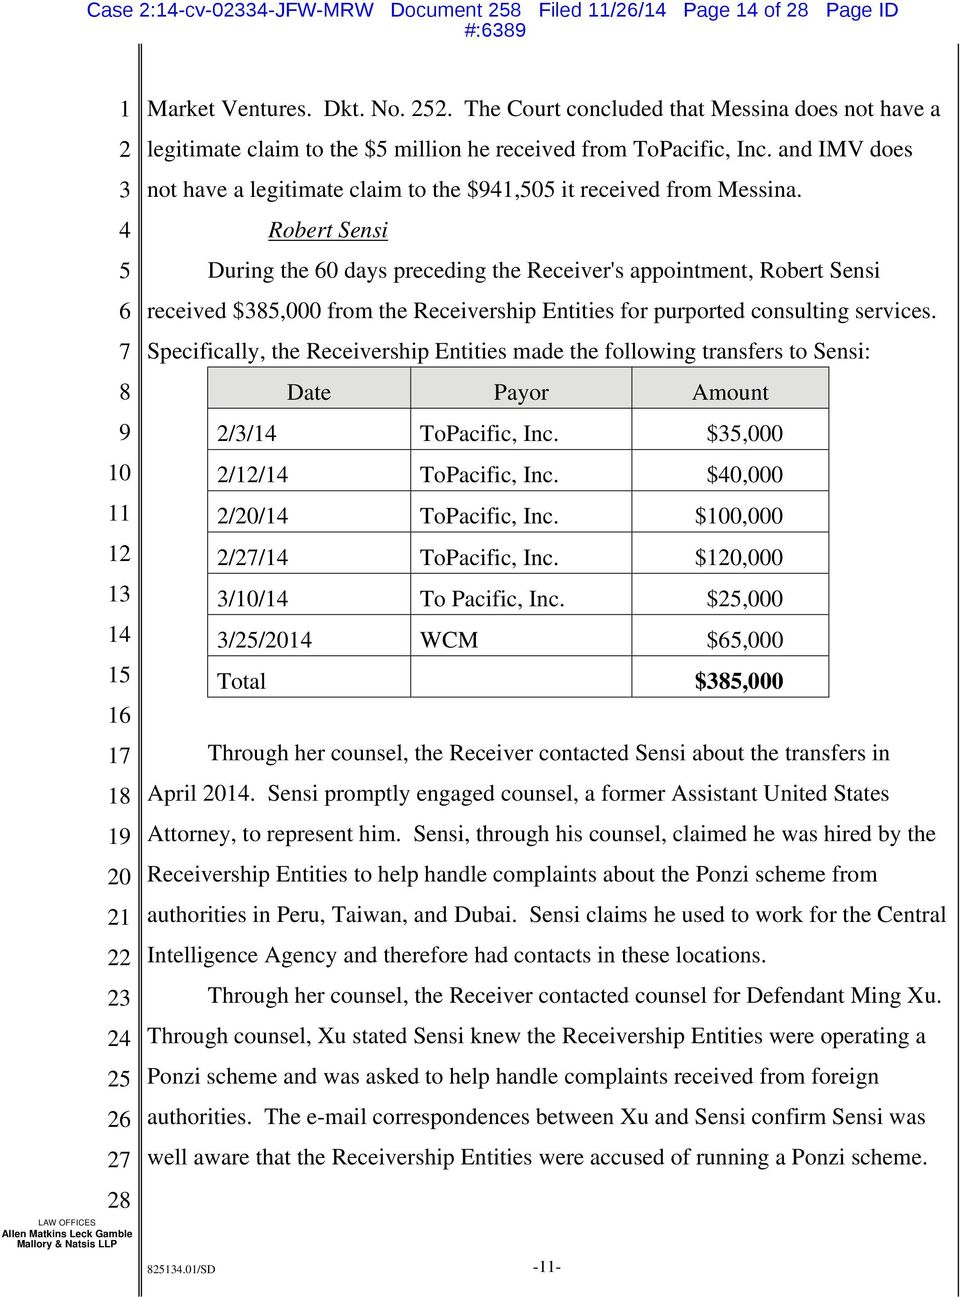 Robert Sensi During the 0 days preceding the Receiver's appointment, Robert Sensi received $,000 from the Receivership Entities for purported consulting services.